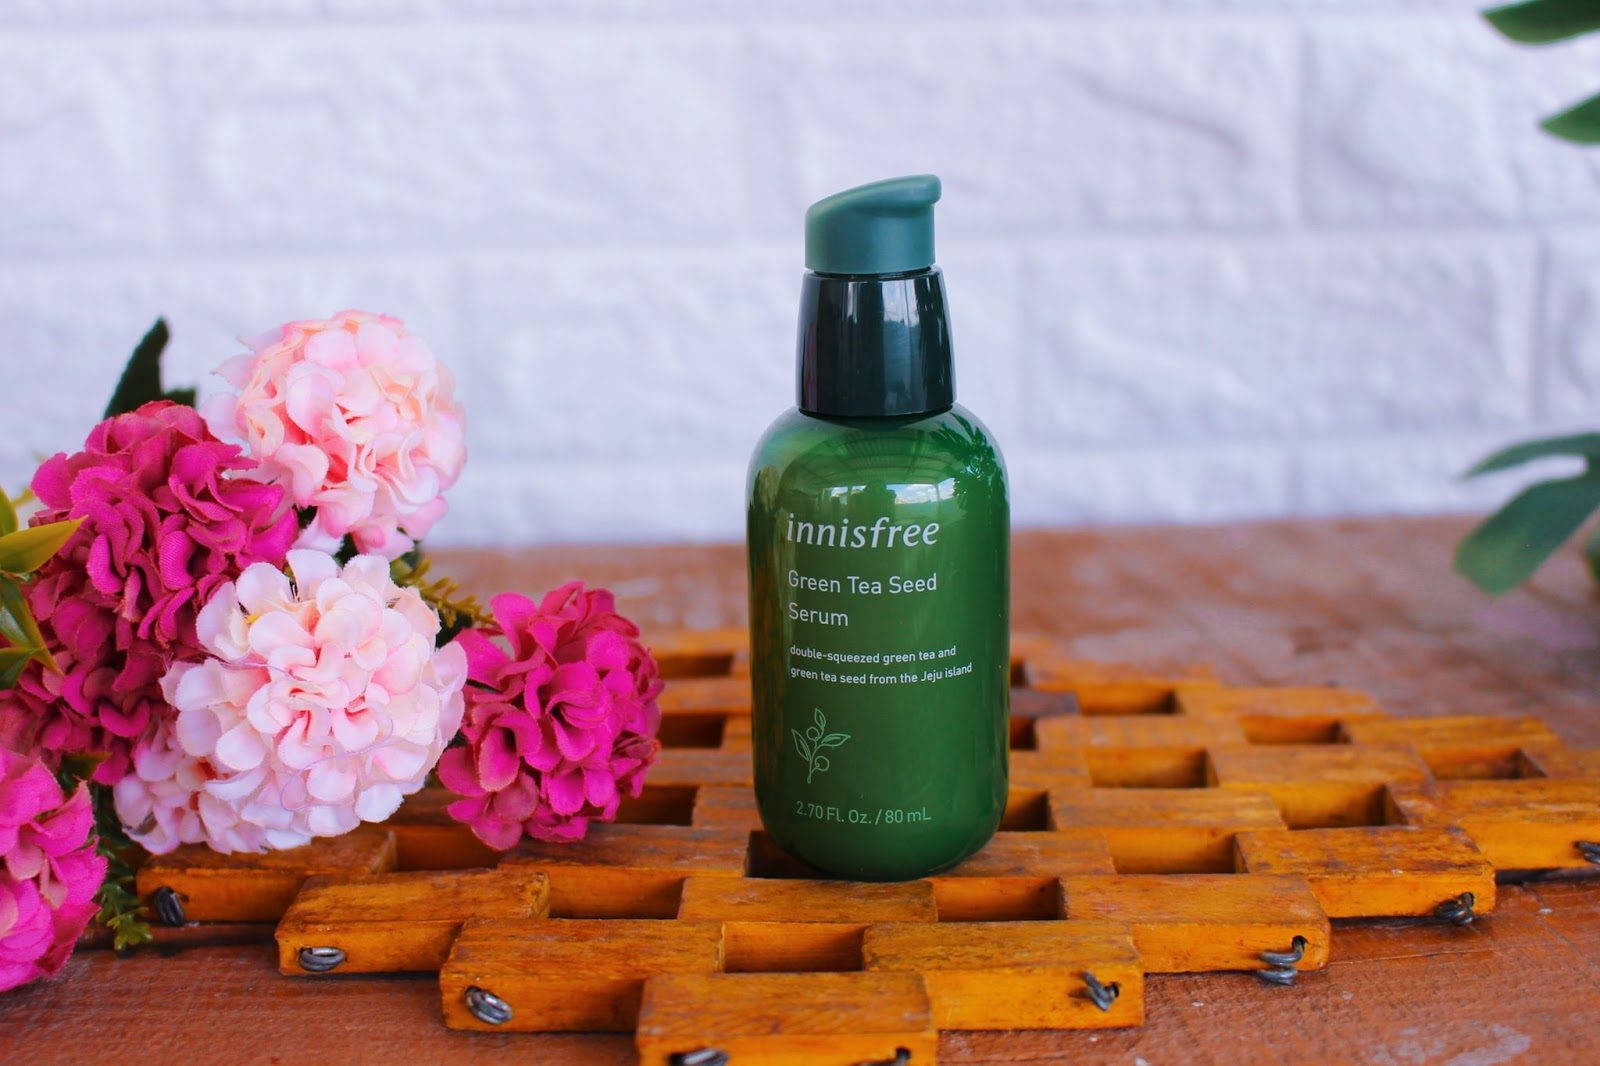 Resenha: Sérum Green Tea Seed da INNISFREE